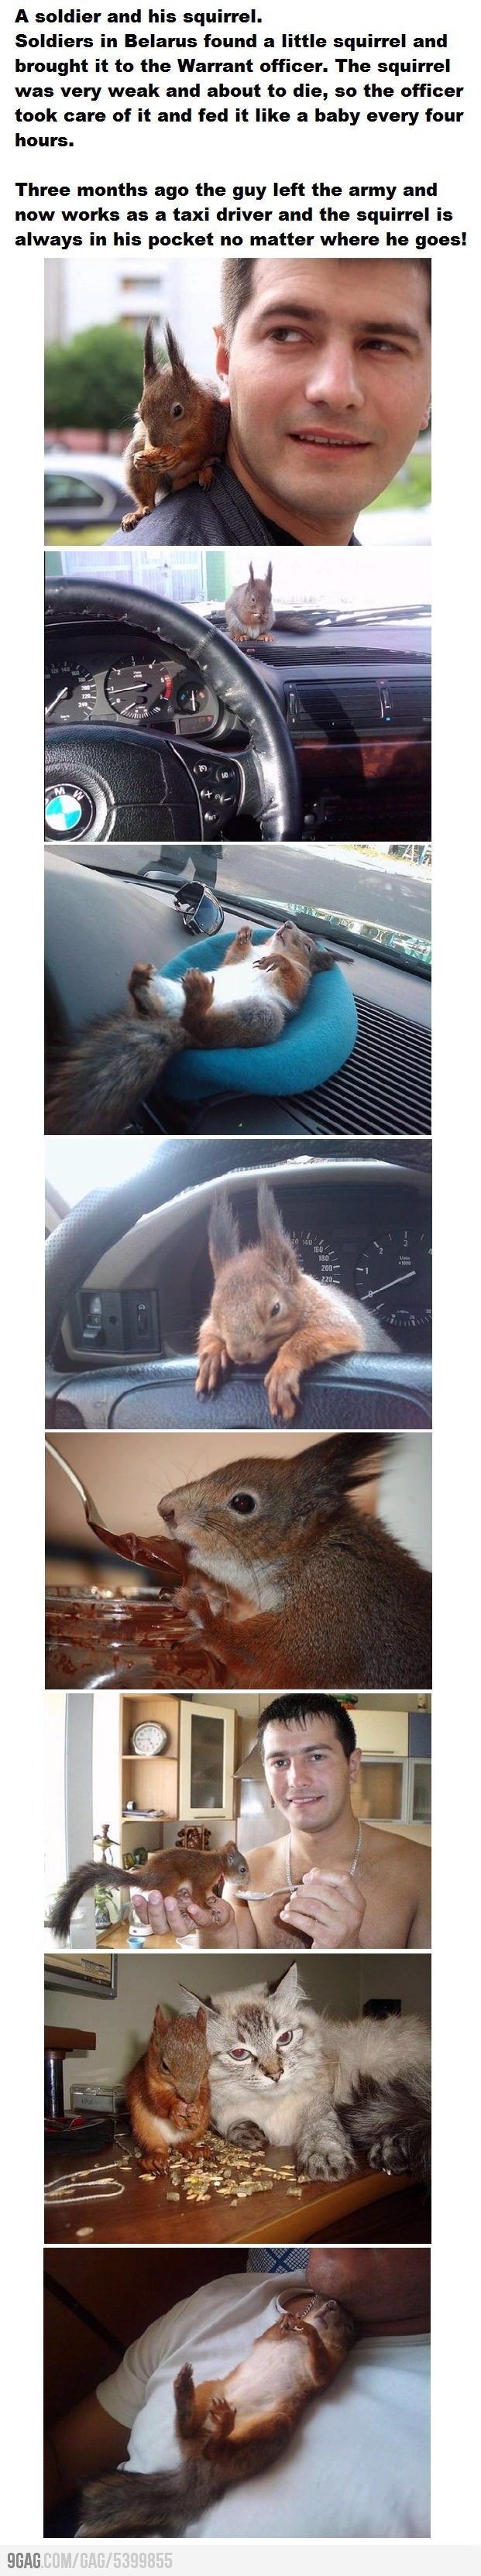 A soldier and his squirrel